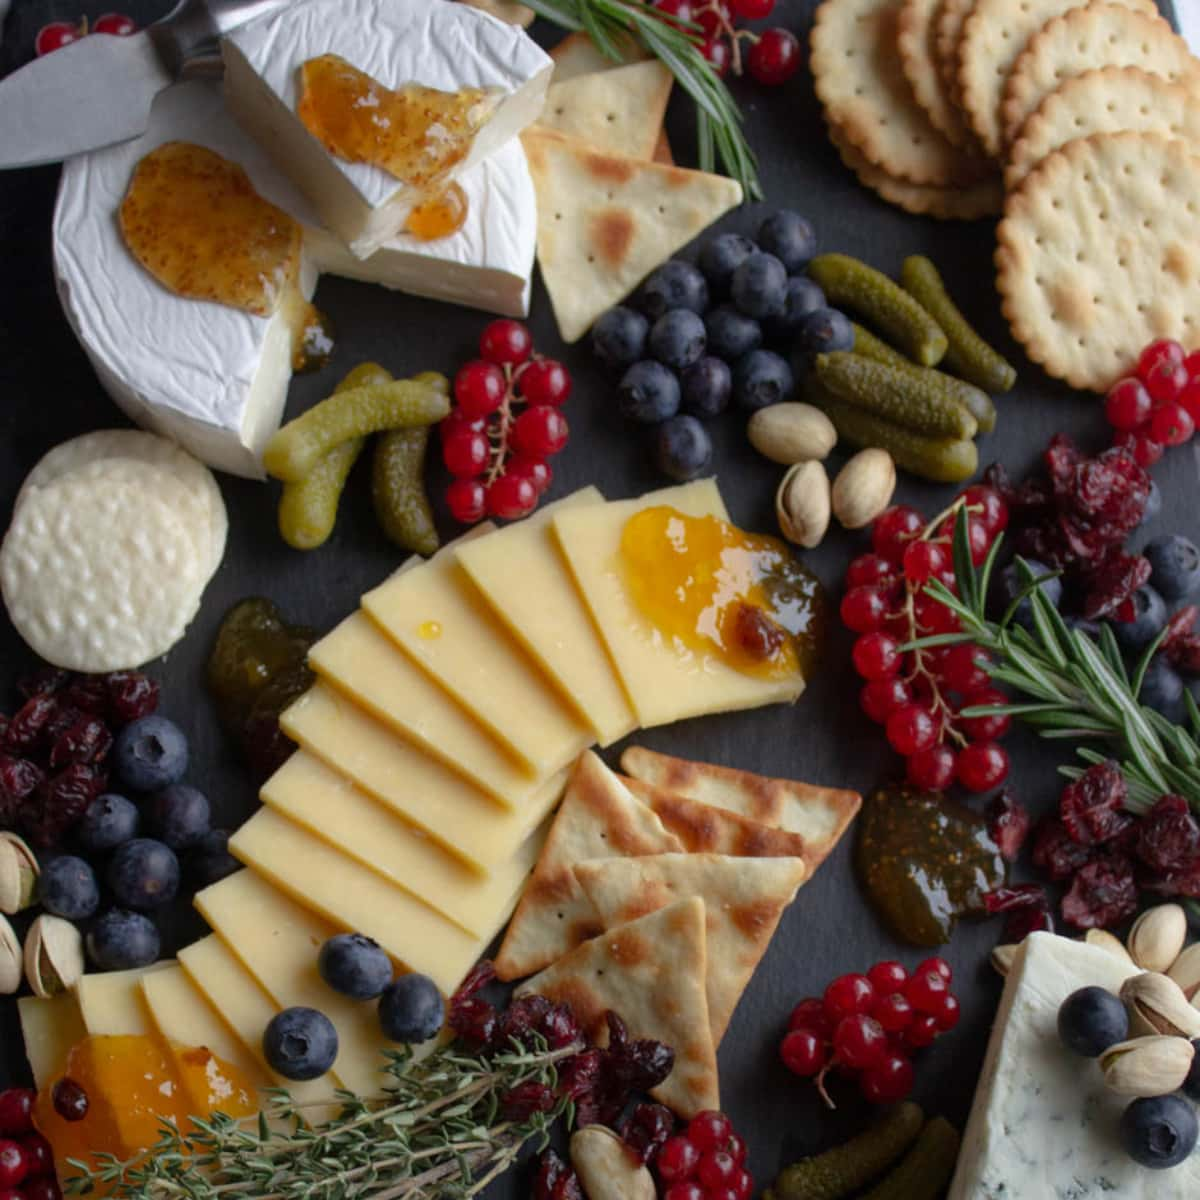 Berries, cheeses, crackers arranged on a black board